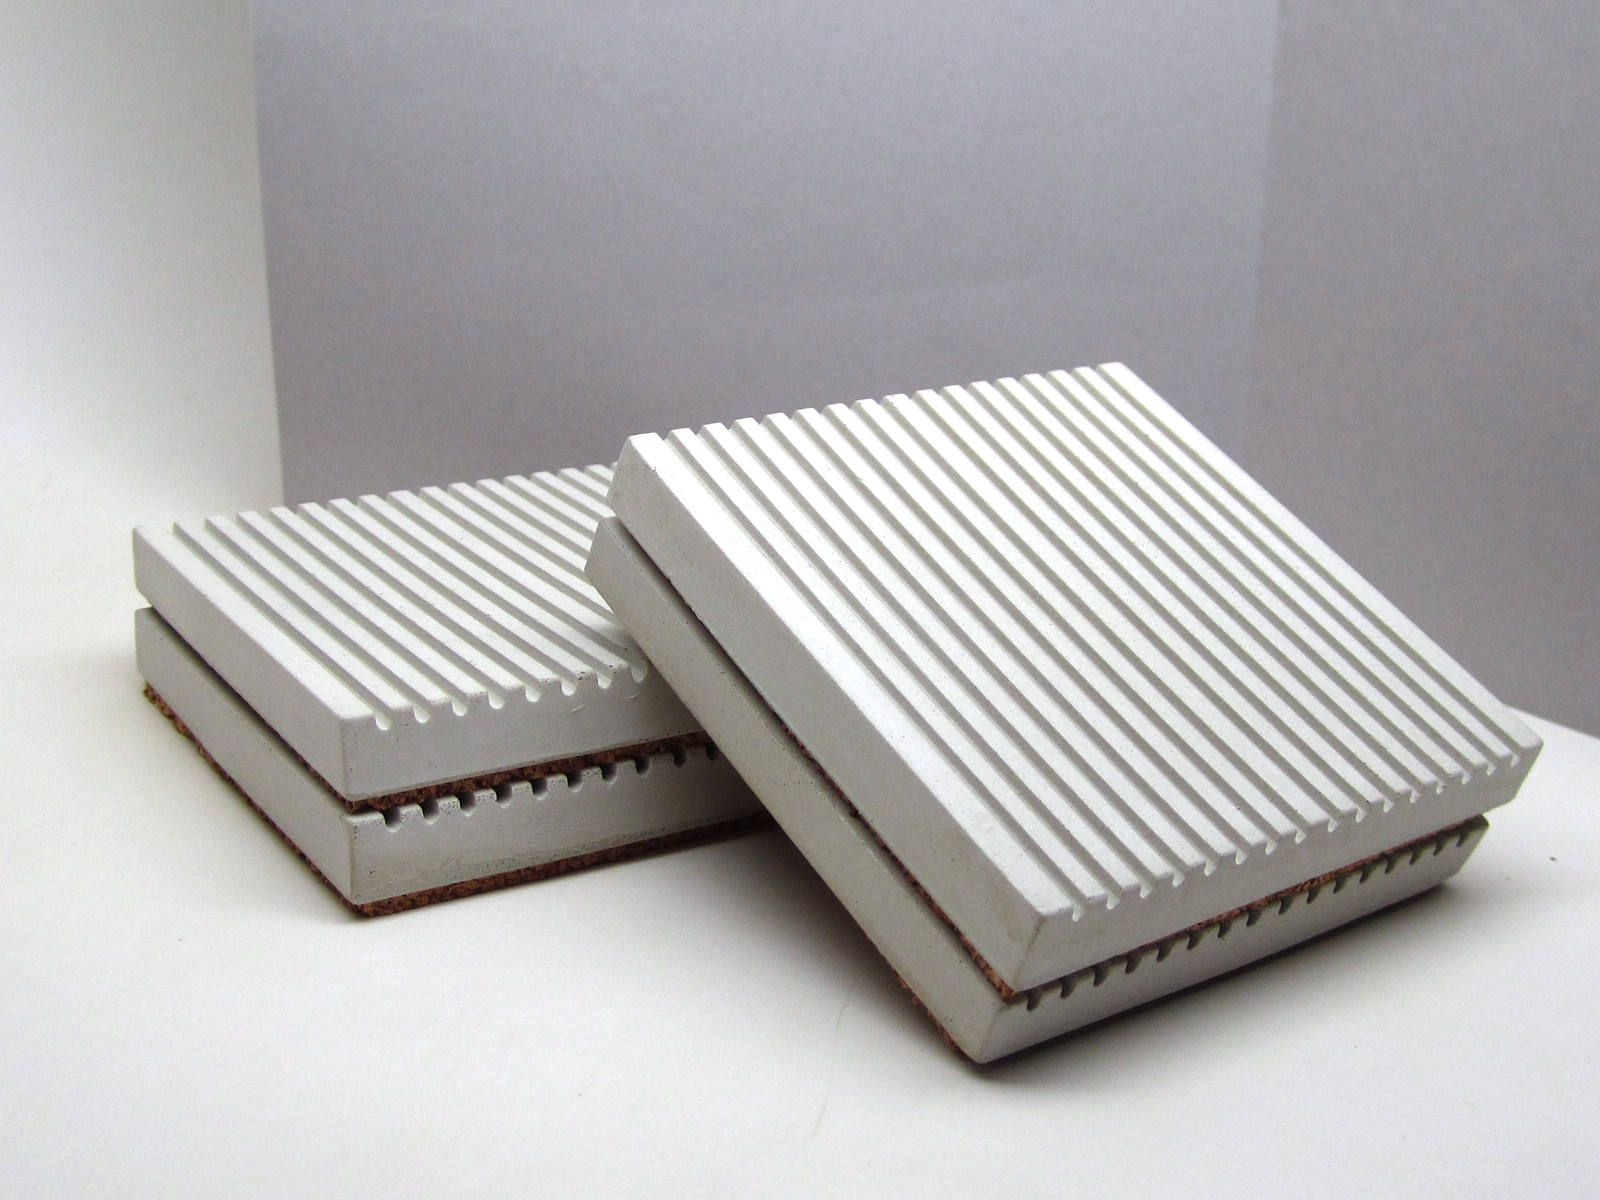 Concrete Coasters Modern Coasters Coaster Set Of Cork Bottom - Cork coaster bottoms